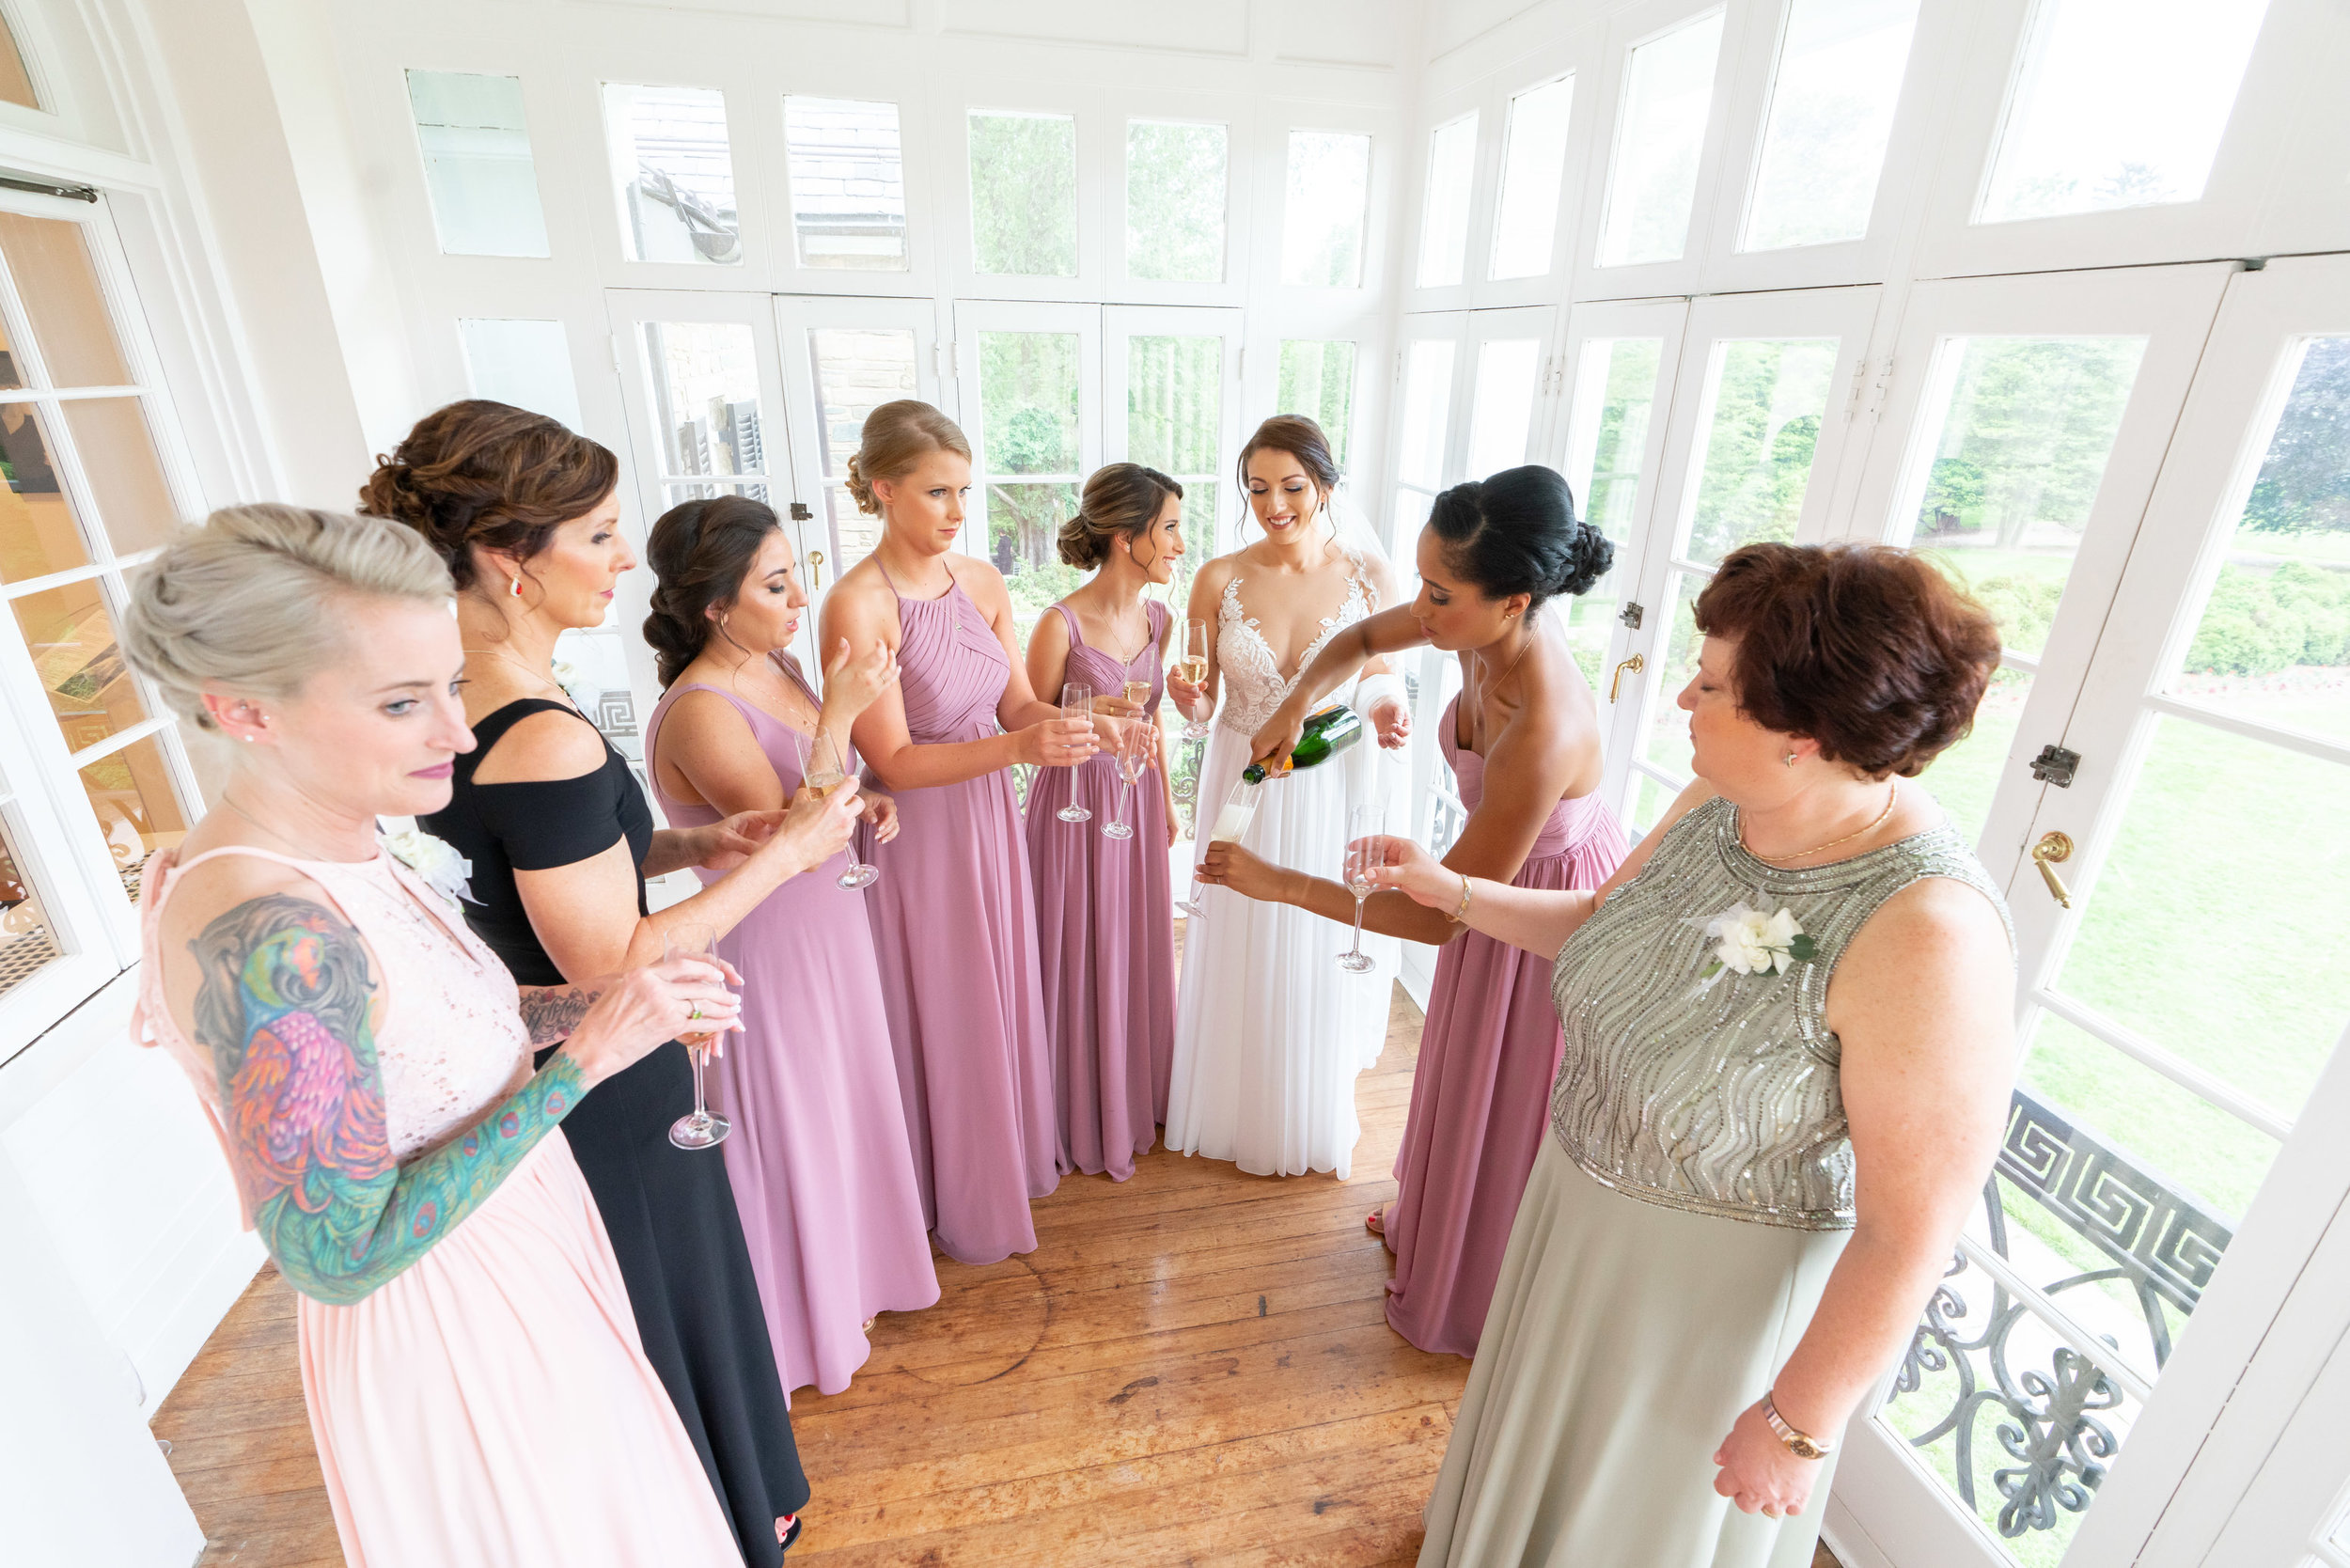 Wedding day at Rockville Glenview Mansion with bride and bridesmaids in balcony